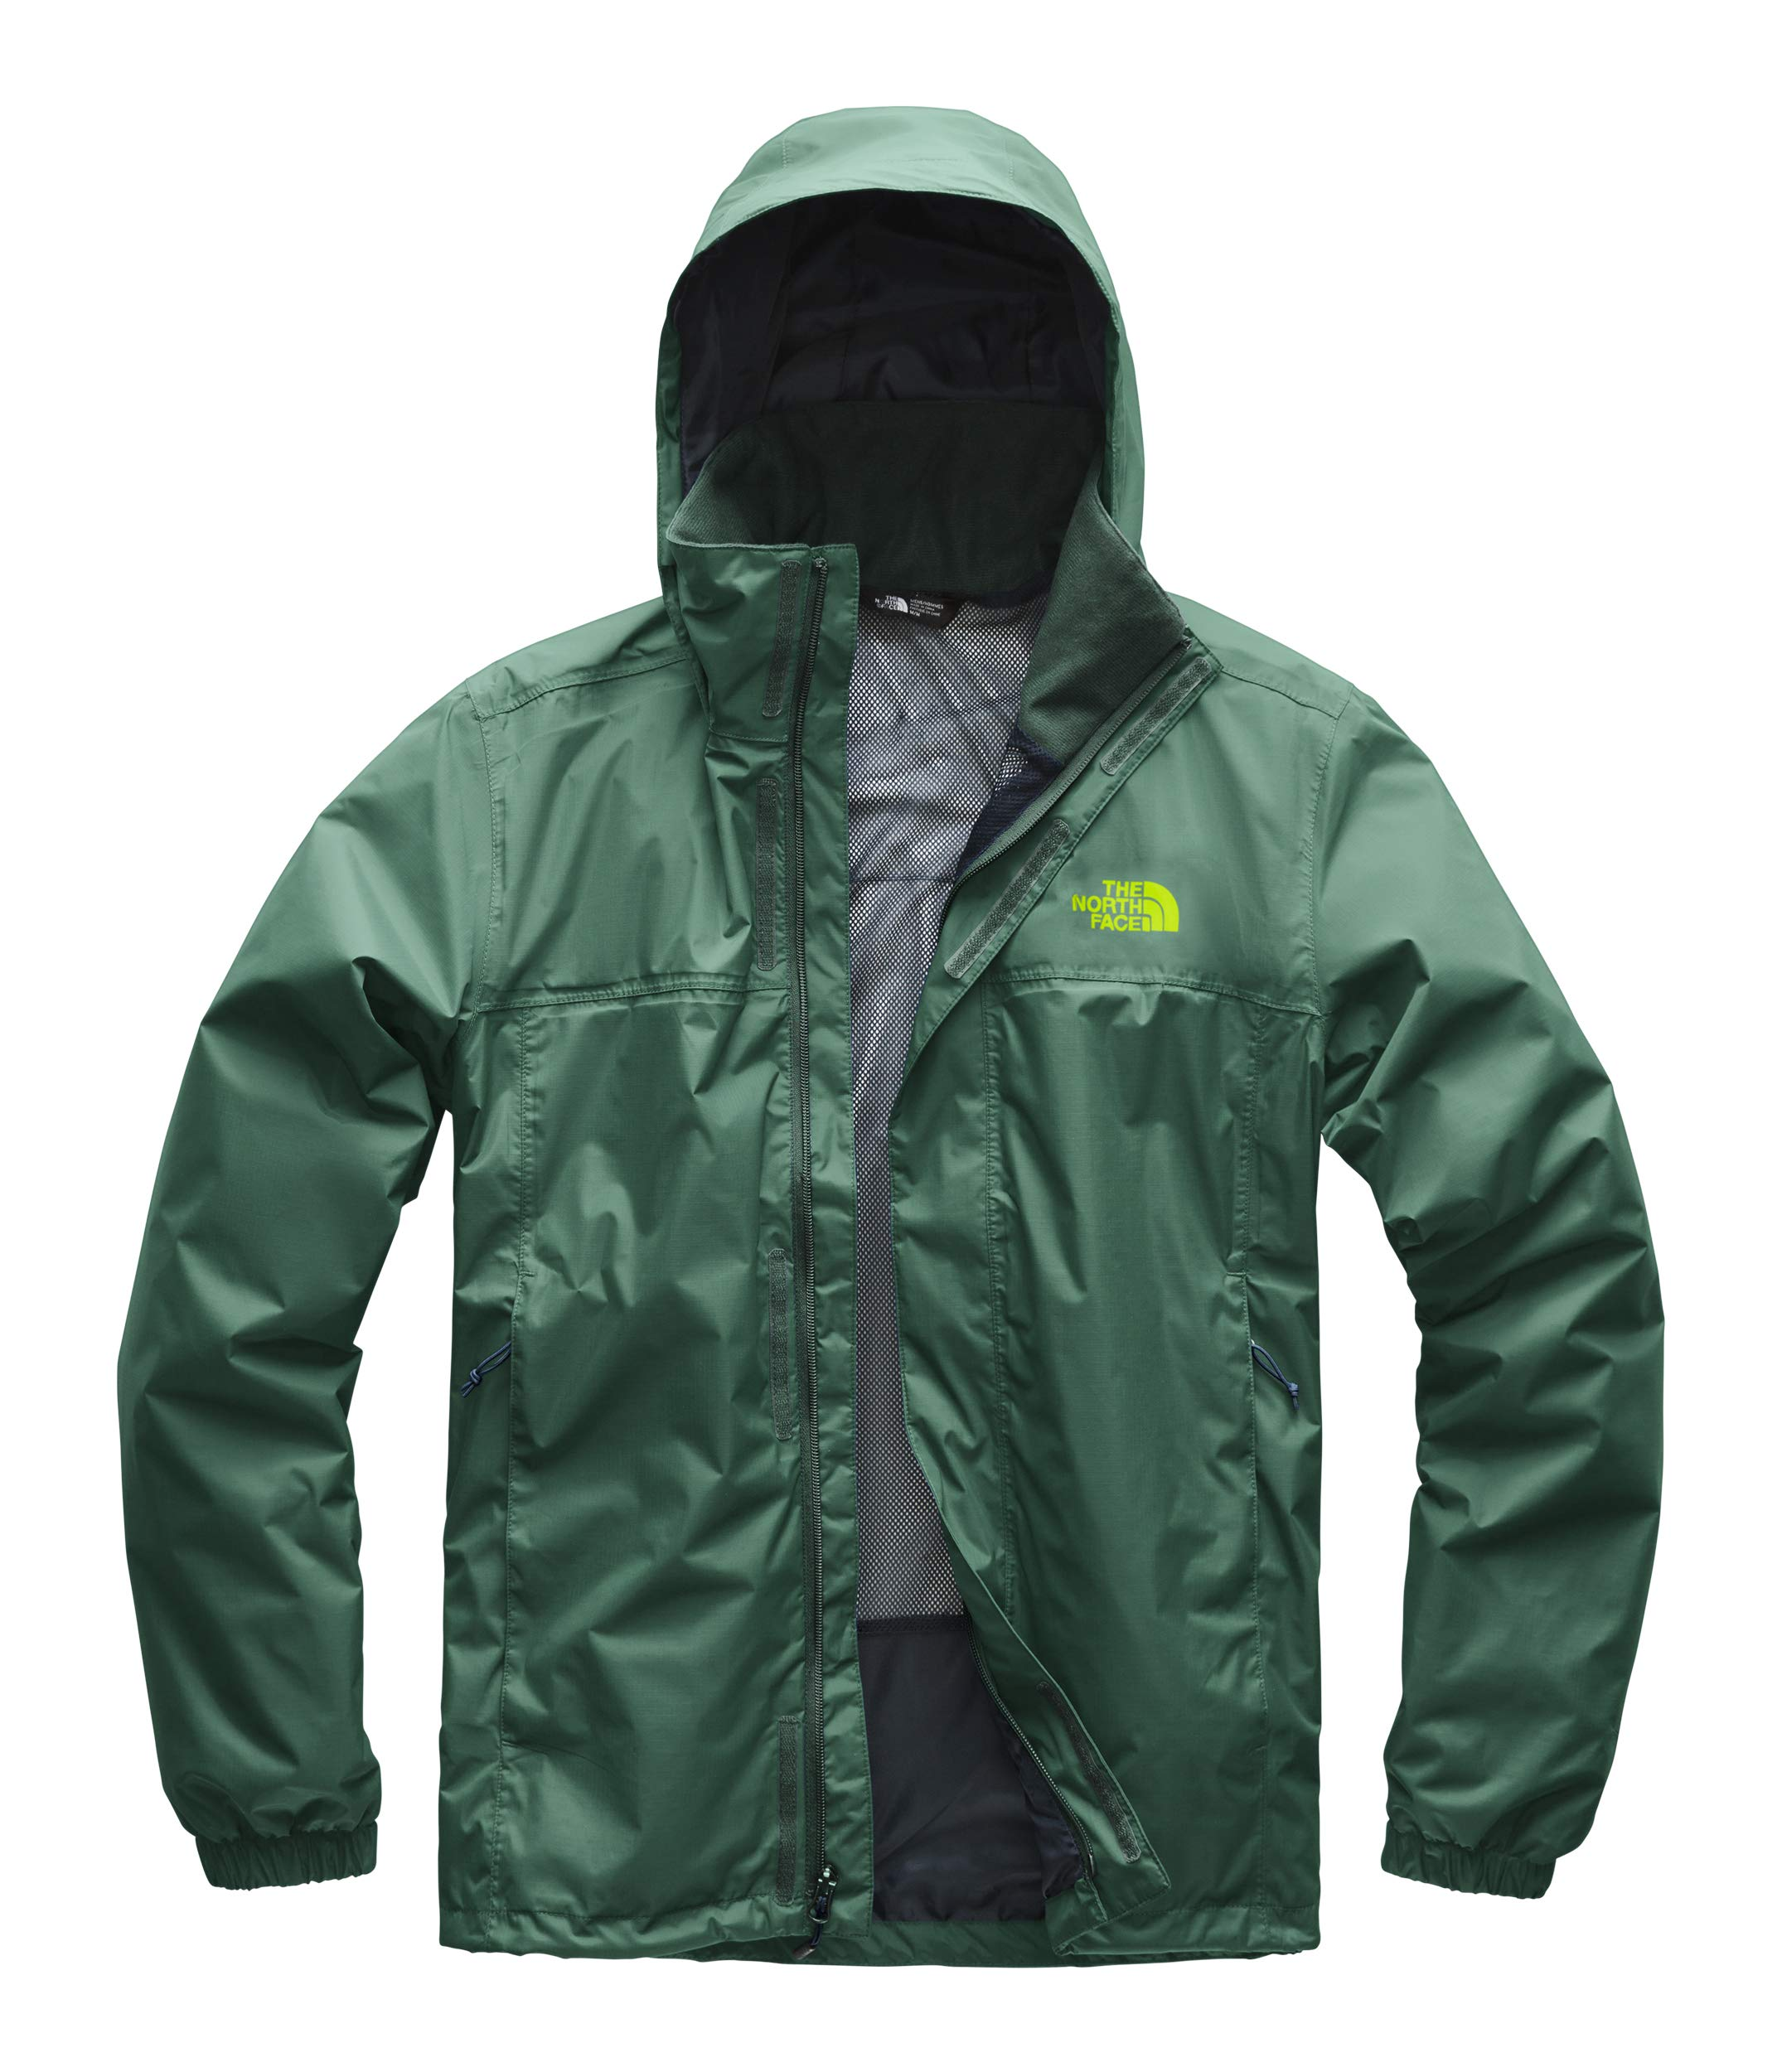 The North Face Men's Resolve 2 Jacket - Botanical Garden Green & Botanical Garden Green - S